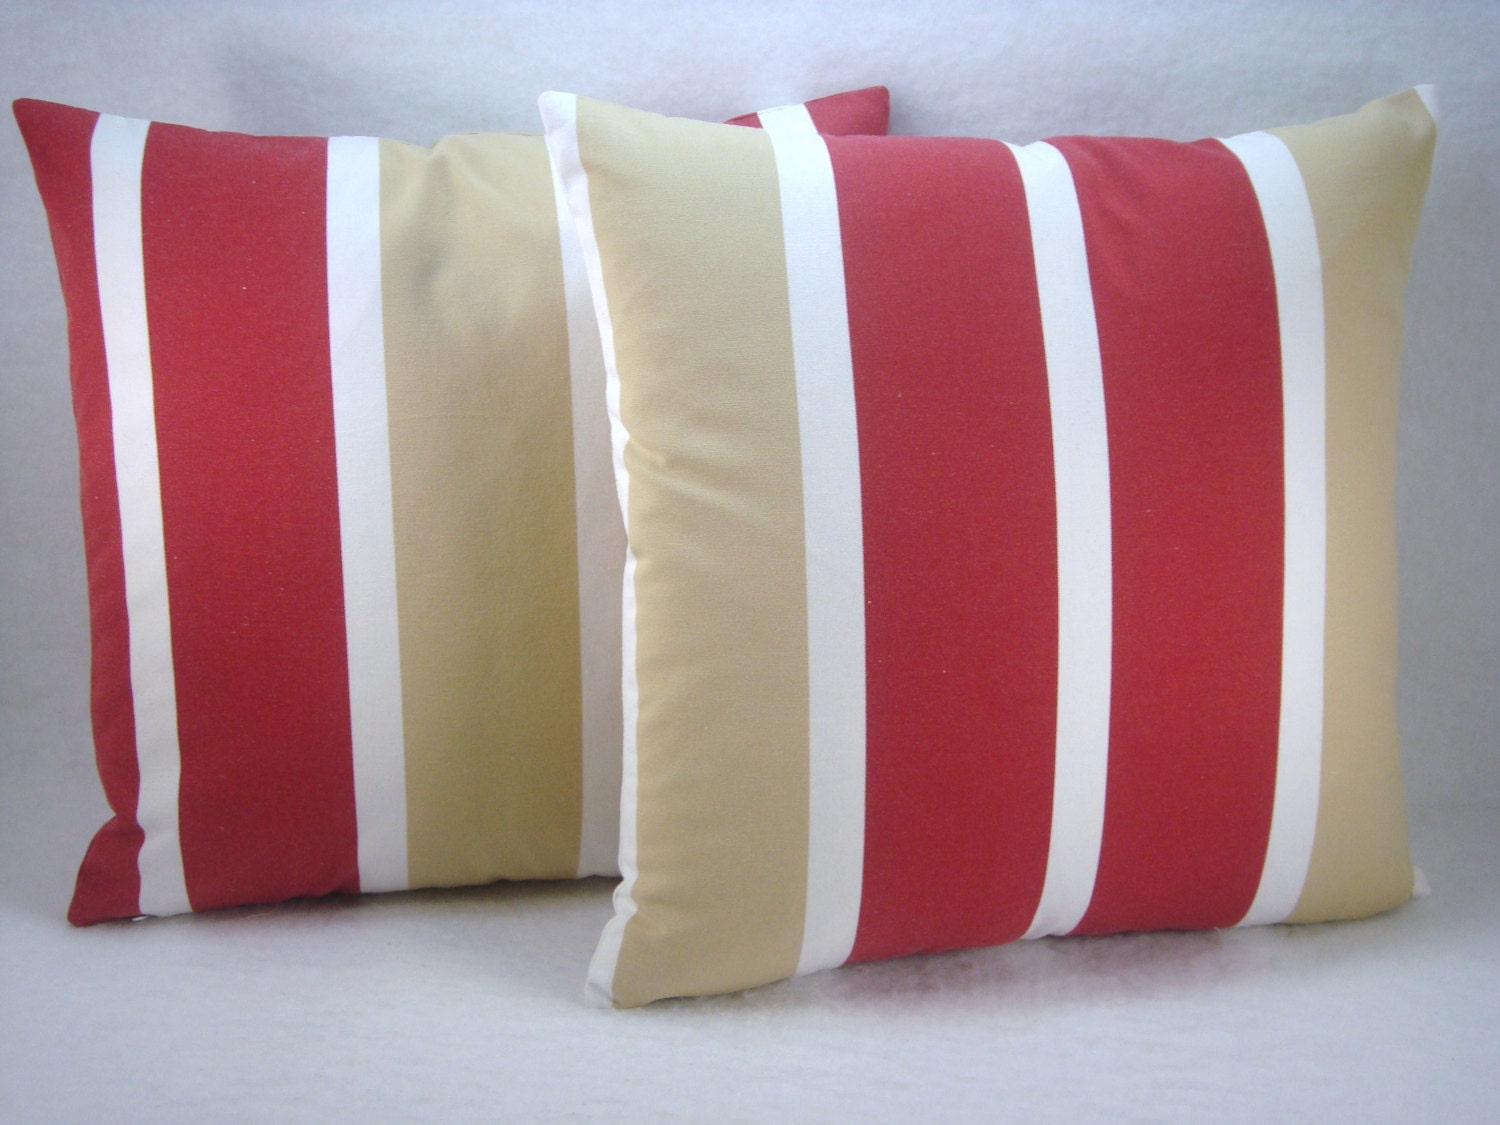 Red And Tan Decorative Pillows : Stripe Red White and Tan Decorative Modern Pillow Cover Accent